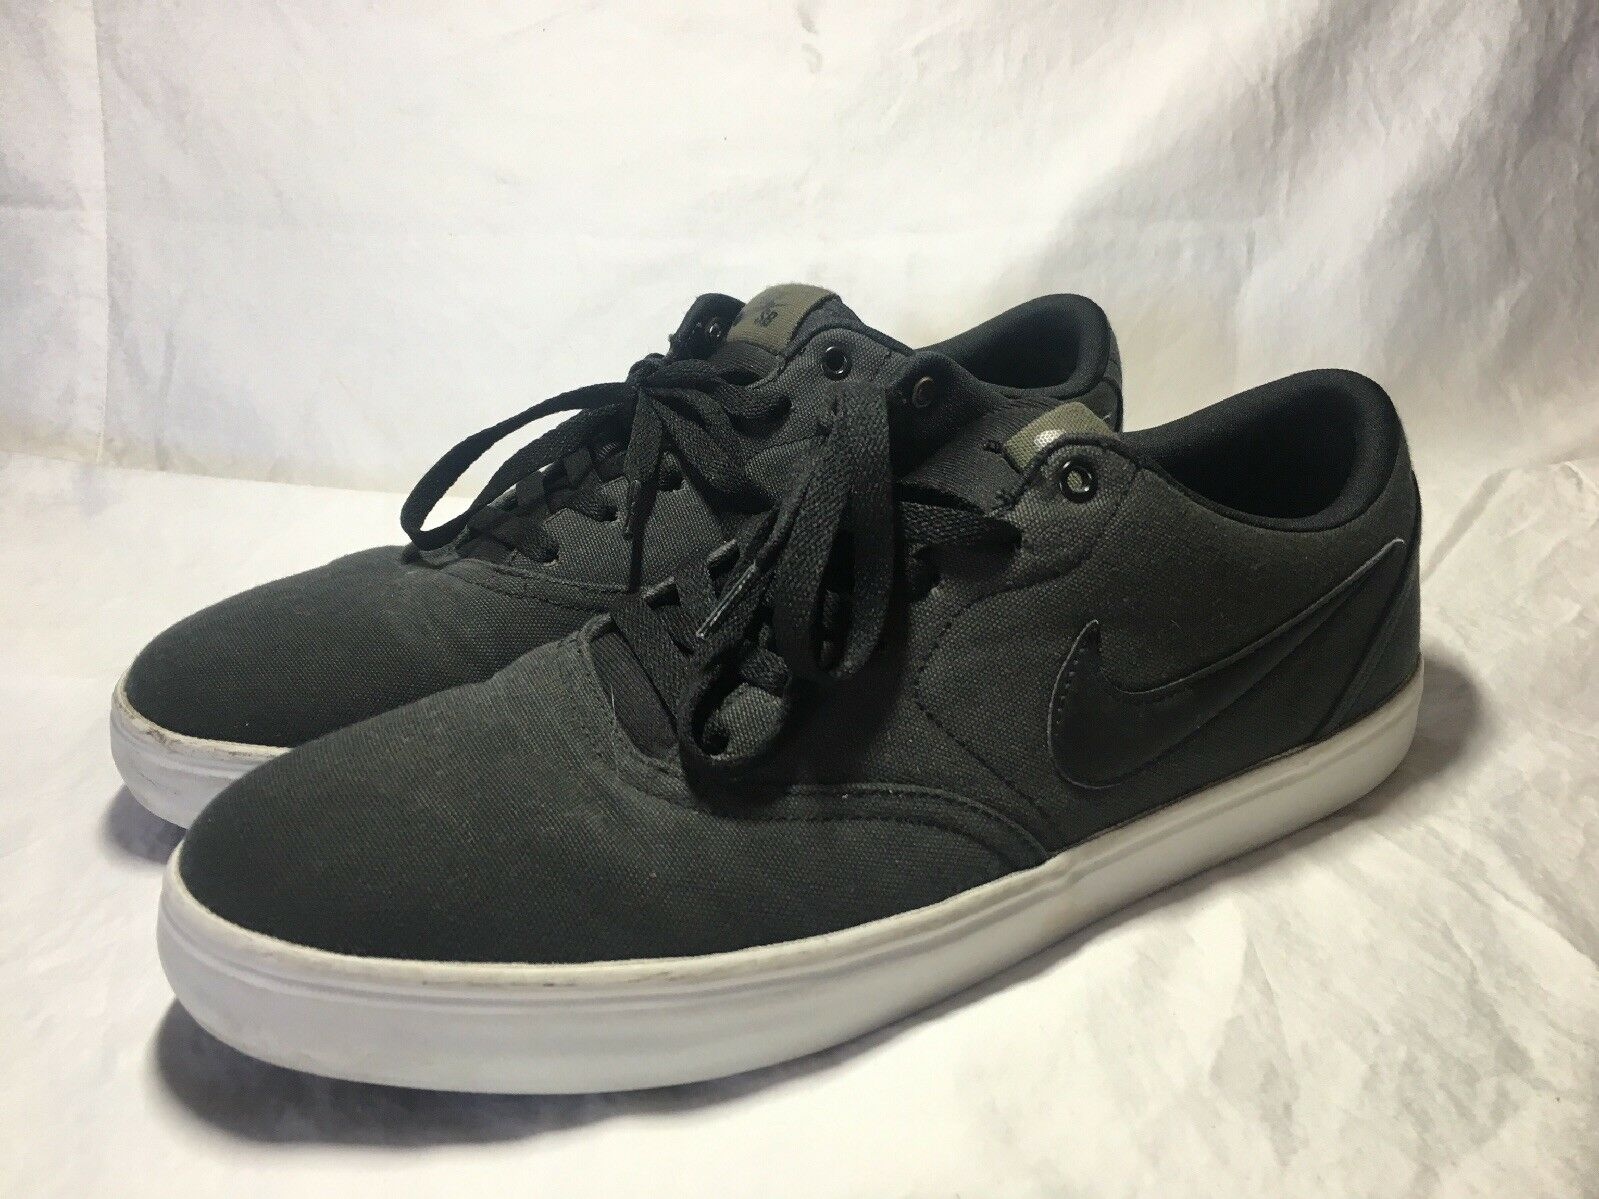 Nike sb men's shoes size 13 The most popular shoes for men and women